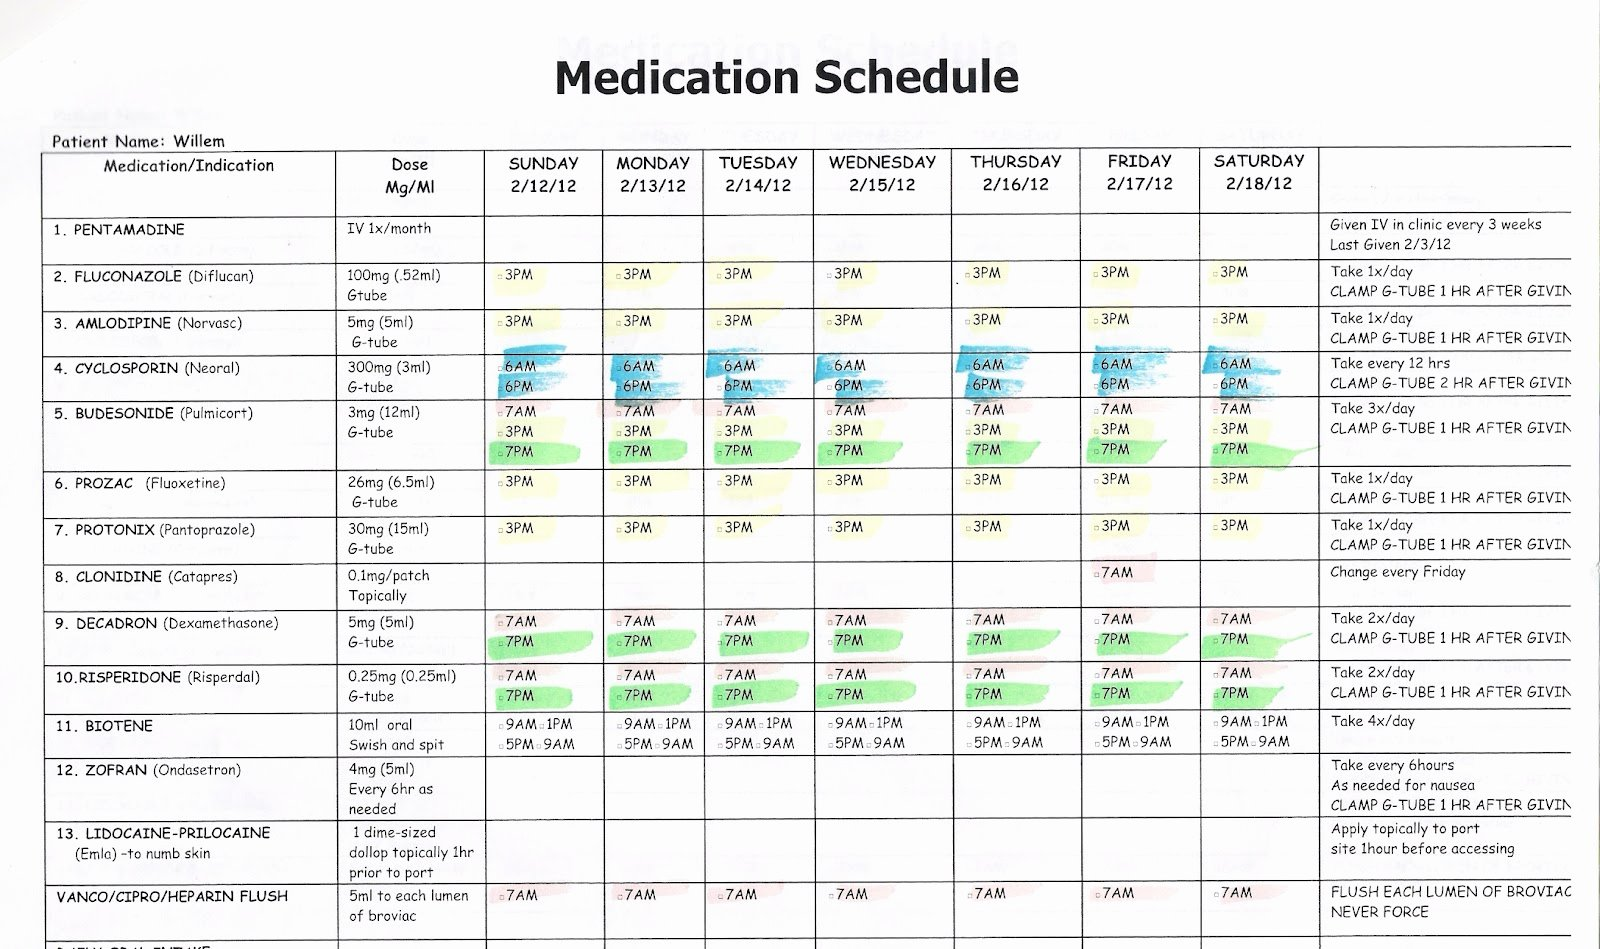 Daily Medication Schedule Template Elegant Willem February 2012